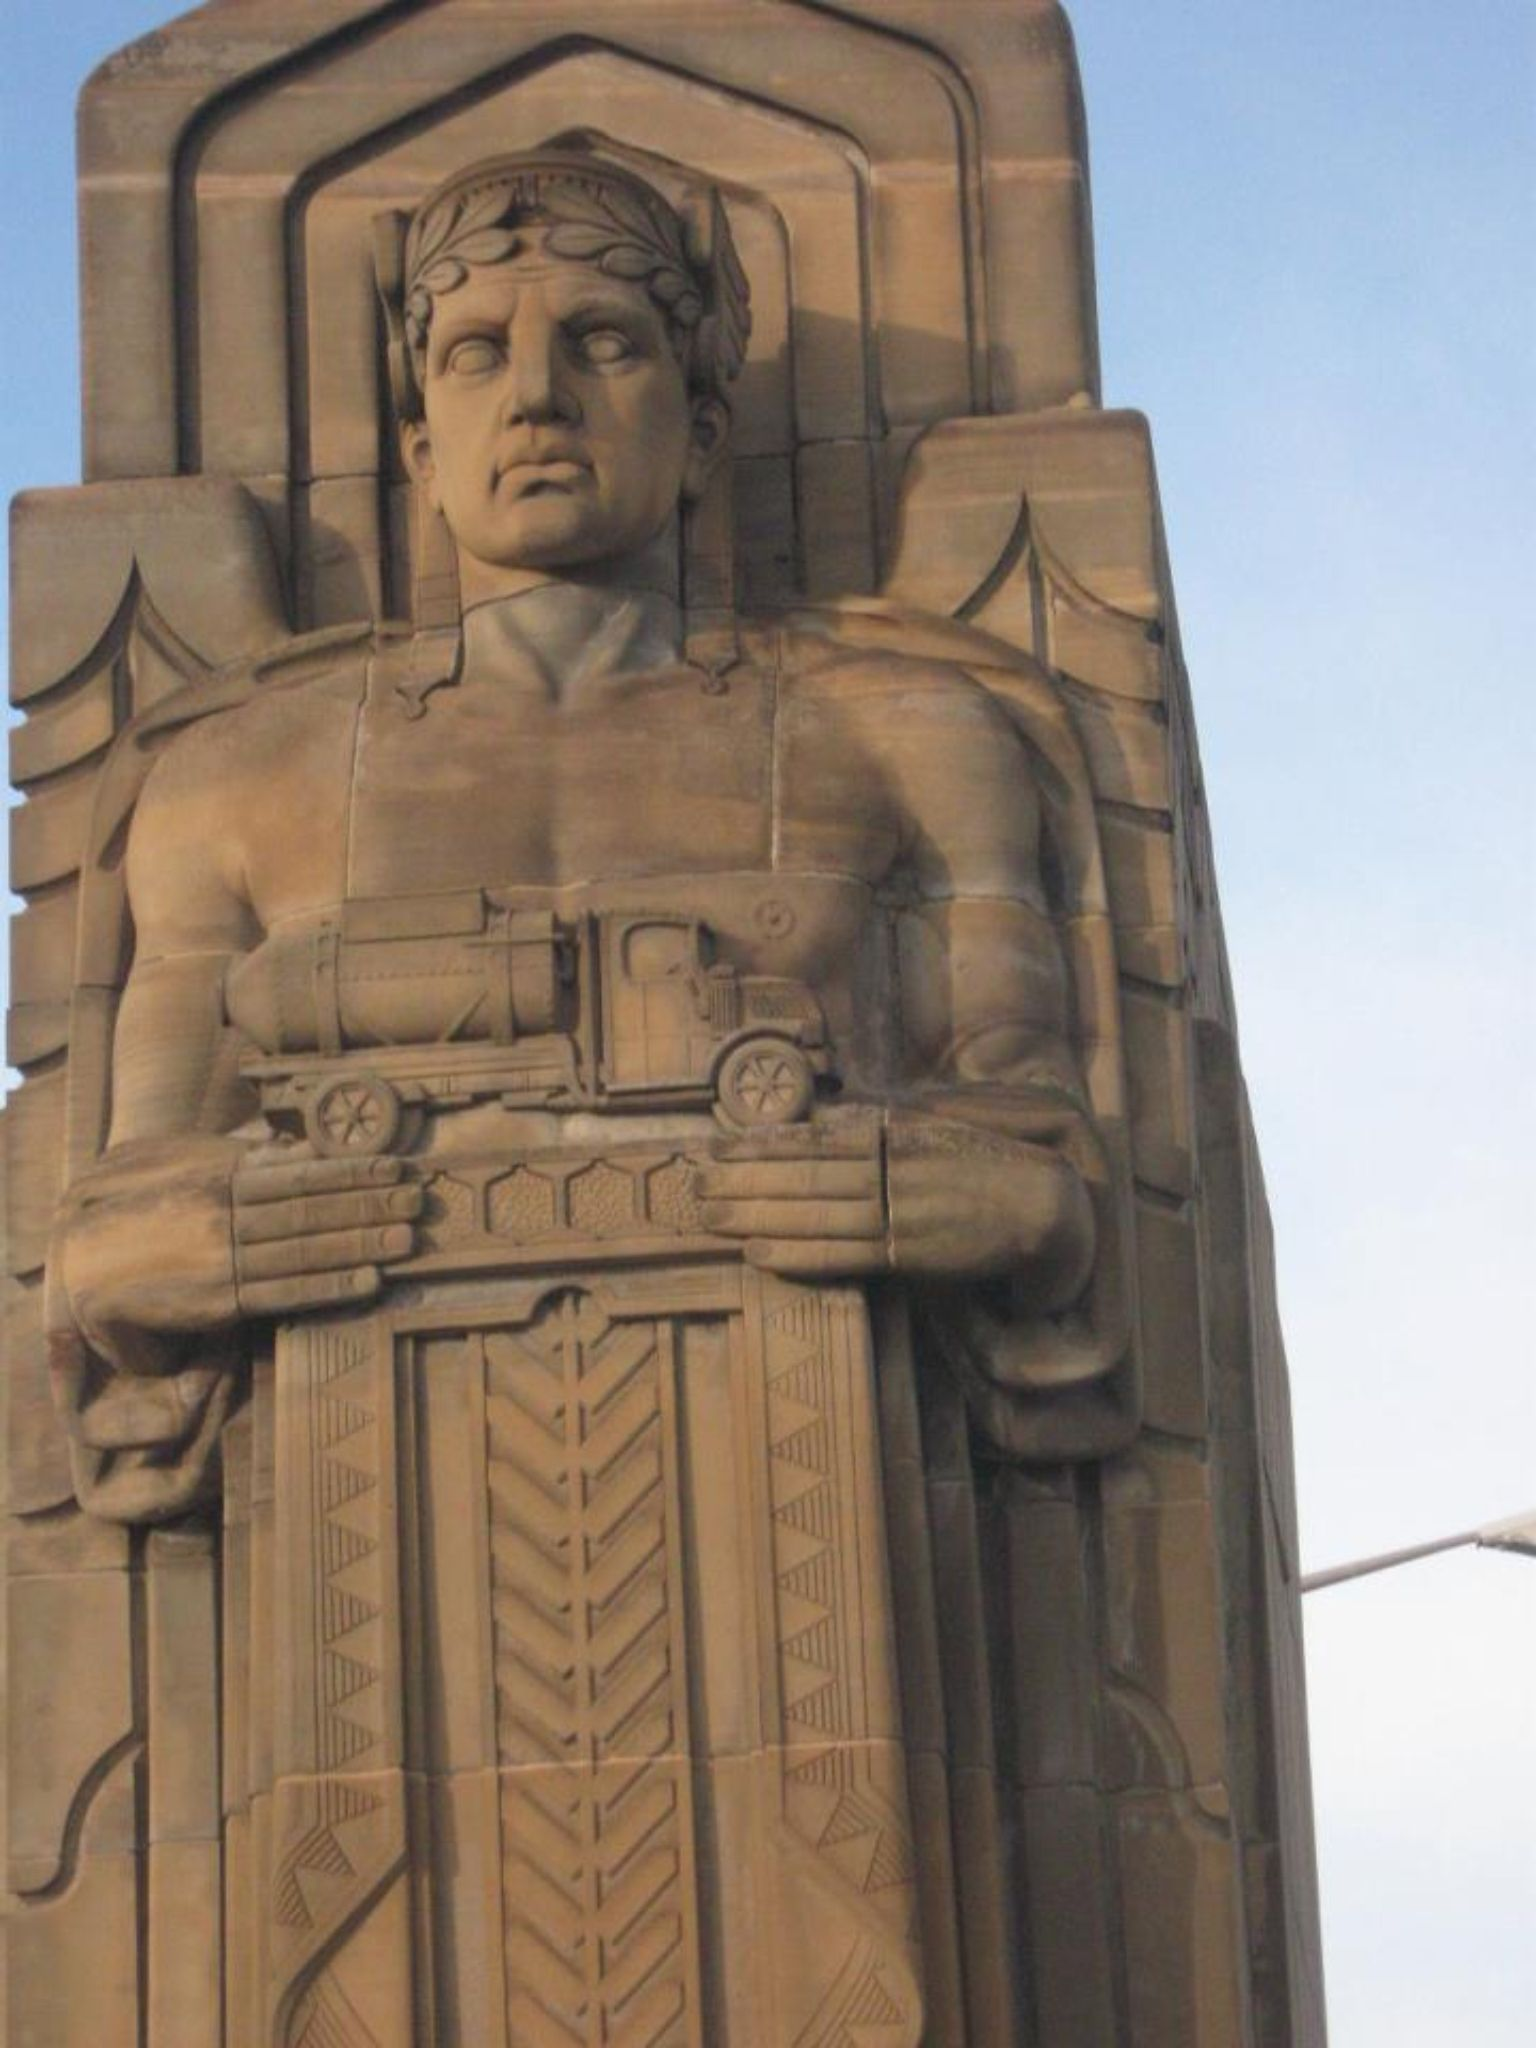 Pin By Lois On Amazing Places Cleveland Ohio Art Deco Architecture The Buckeye State